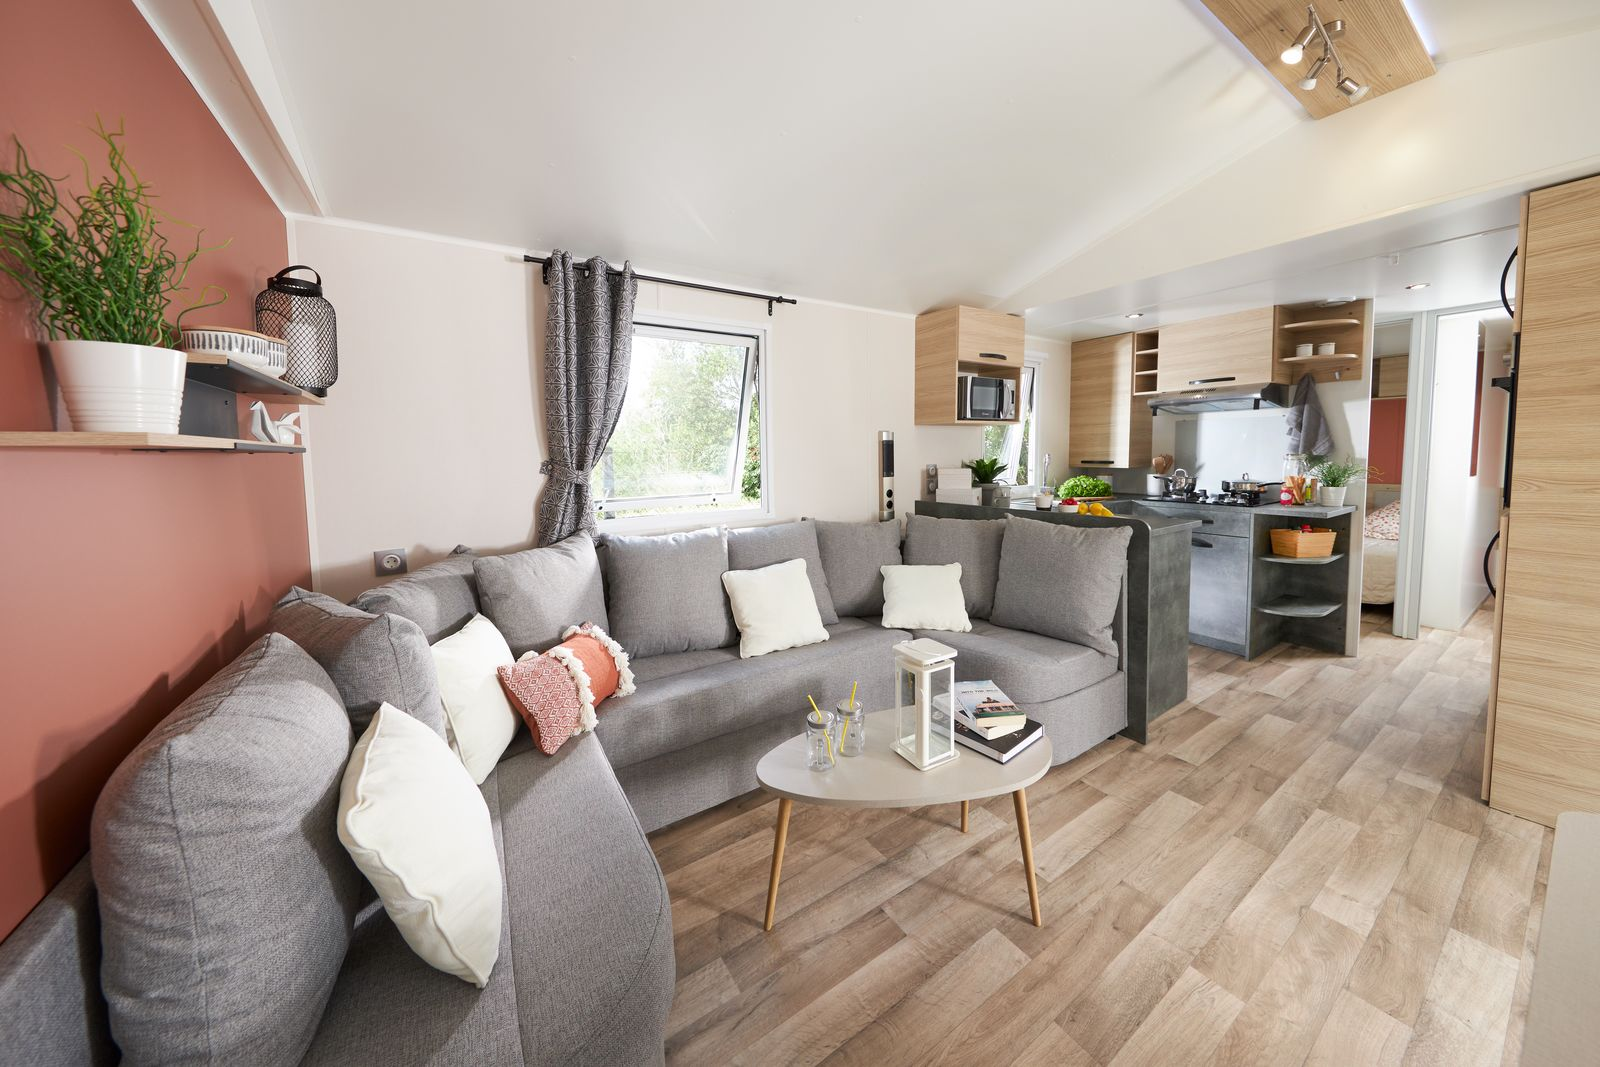 residences trigano mobil home residentiel gamme residentielle